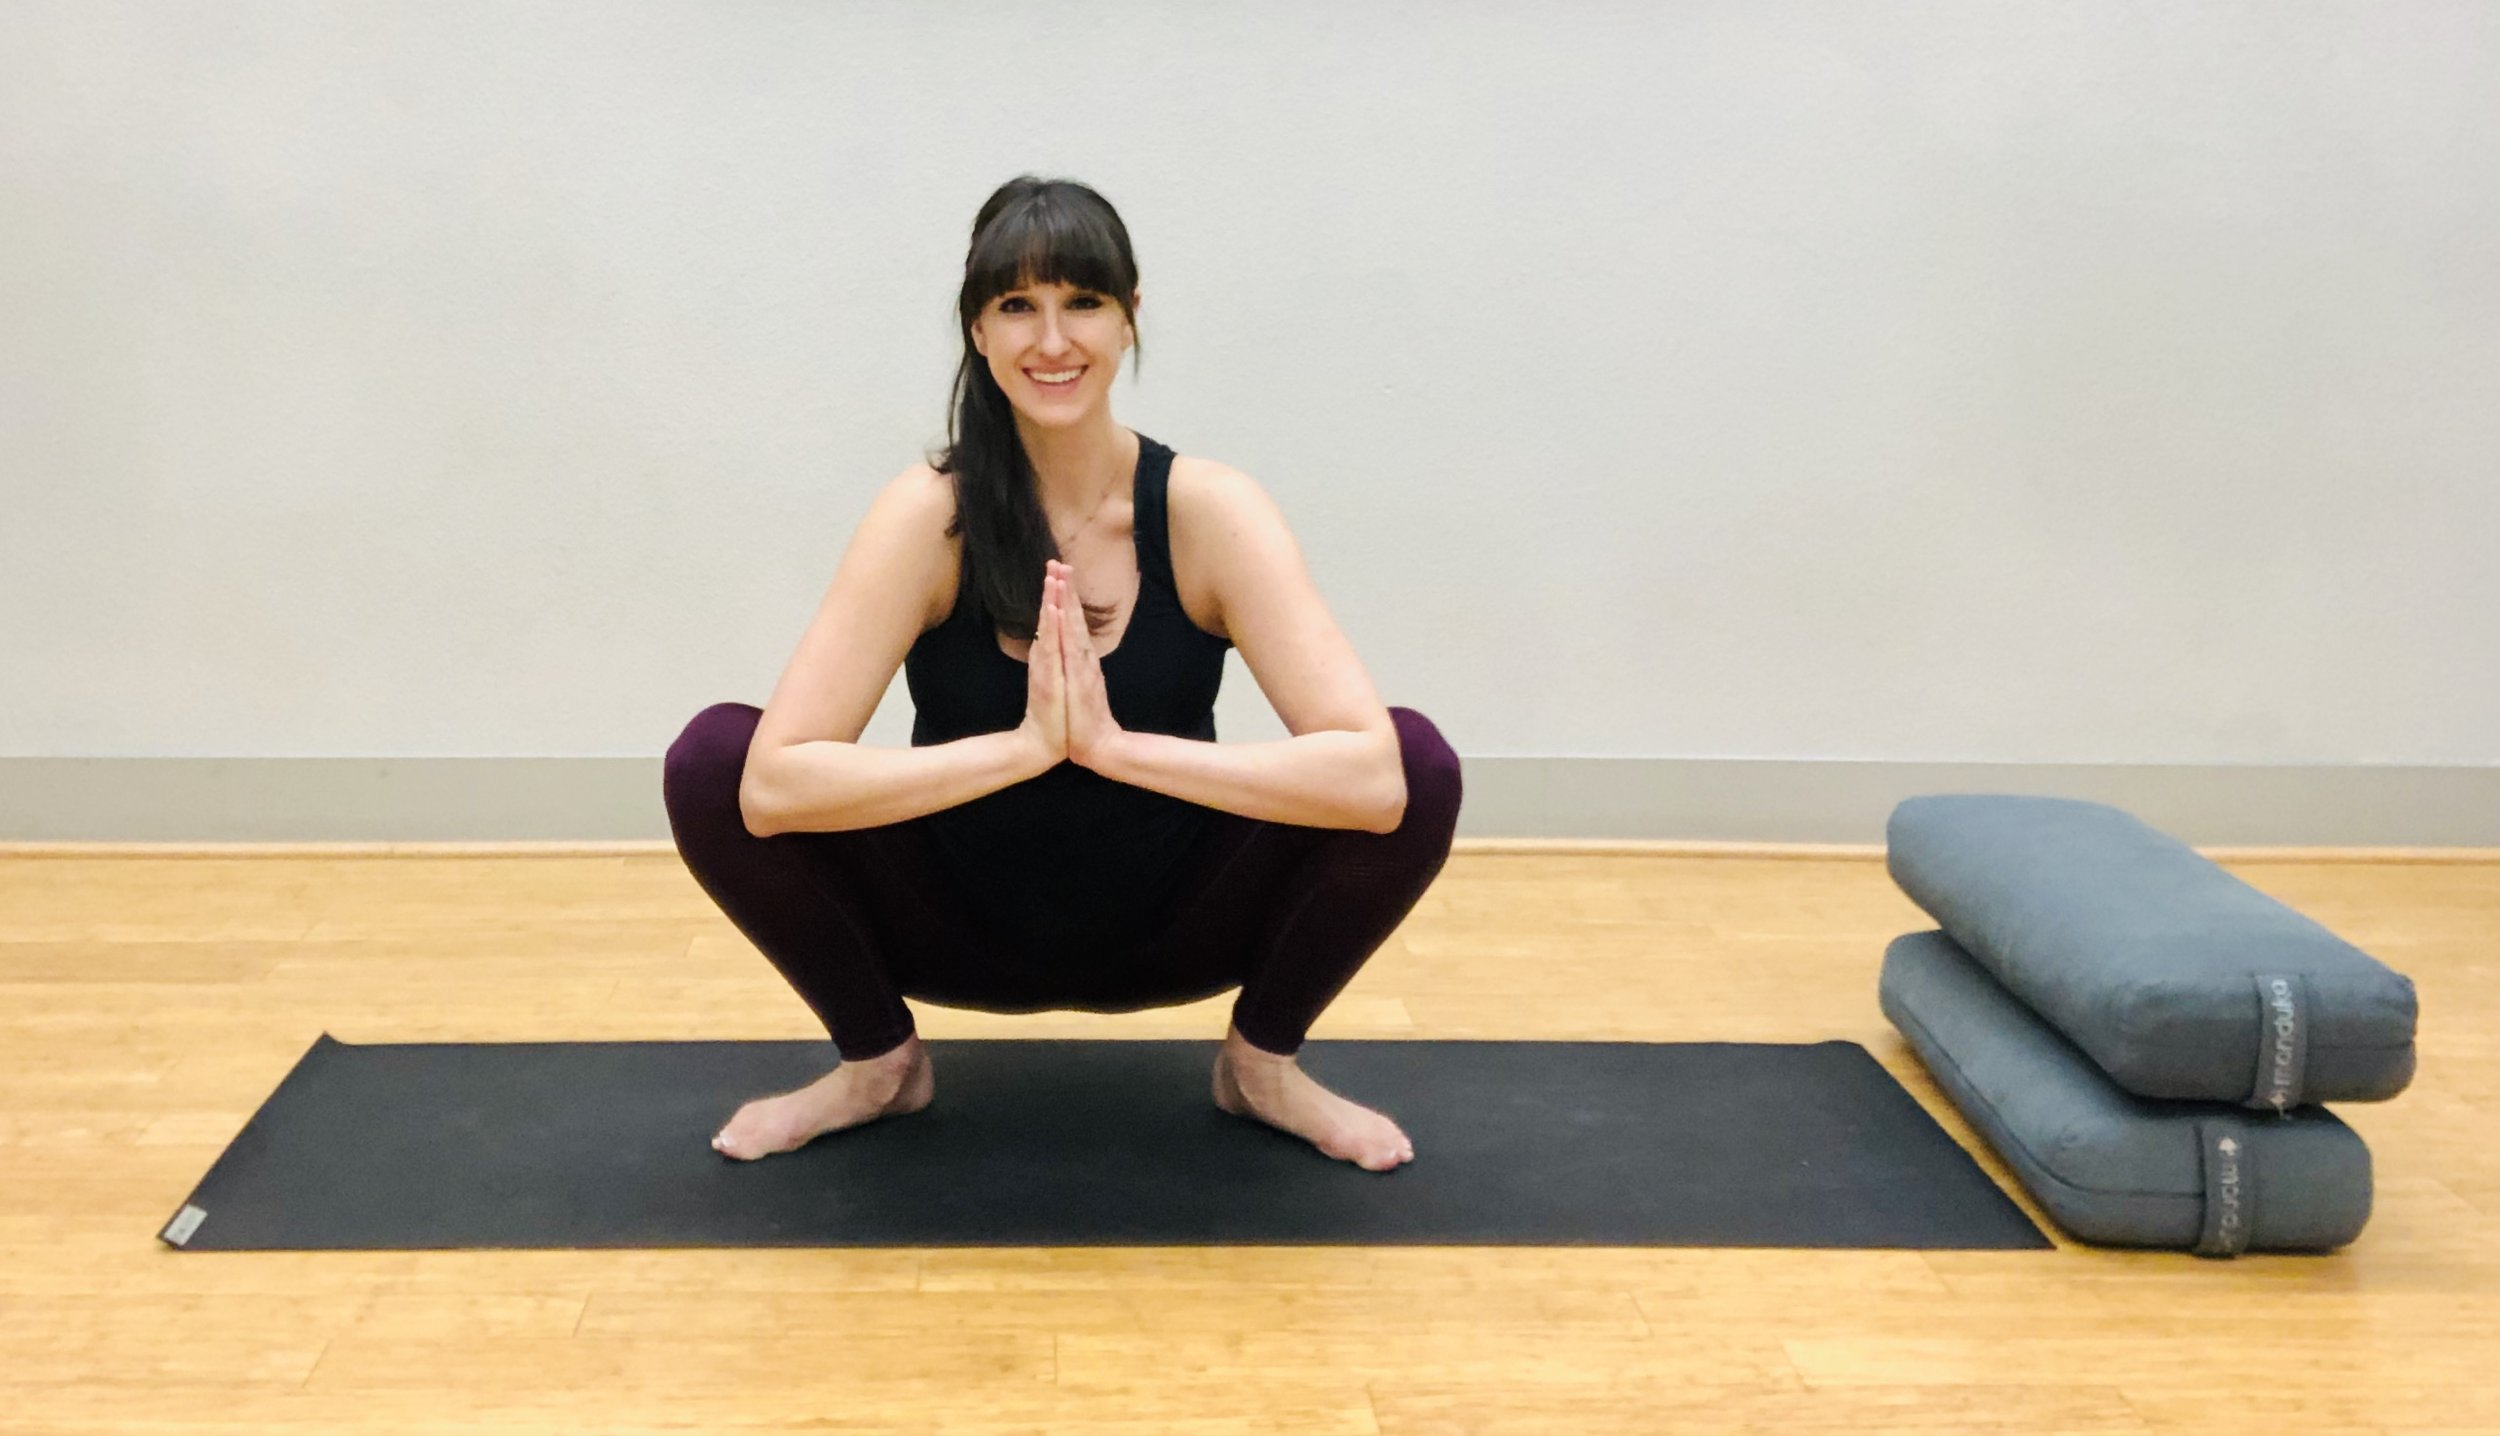 Squat. Other options include sitting on a ball, bolster or pillow. Heels may be lifted, but aim to keep feet wide and flat on the floor. See video for partner-assisted variations!